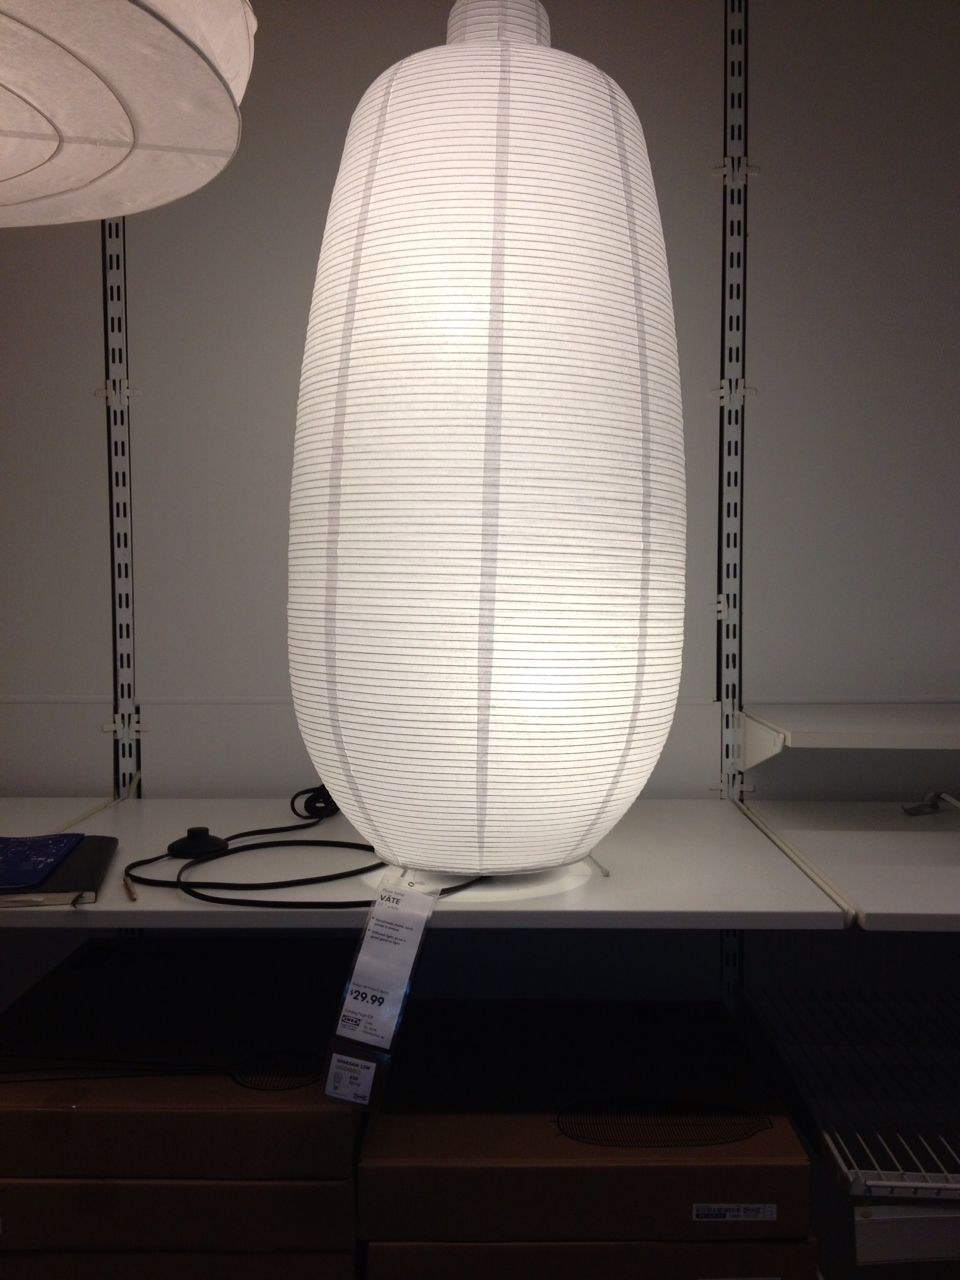 Vate lamp 30 short and squat office decor ideas pinterest vate lamp 30 short and squat geotapseo Image collections